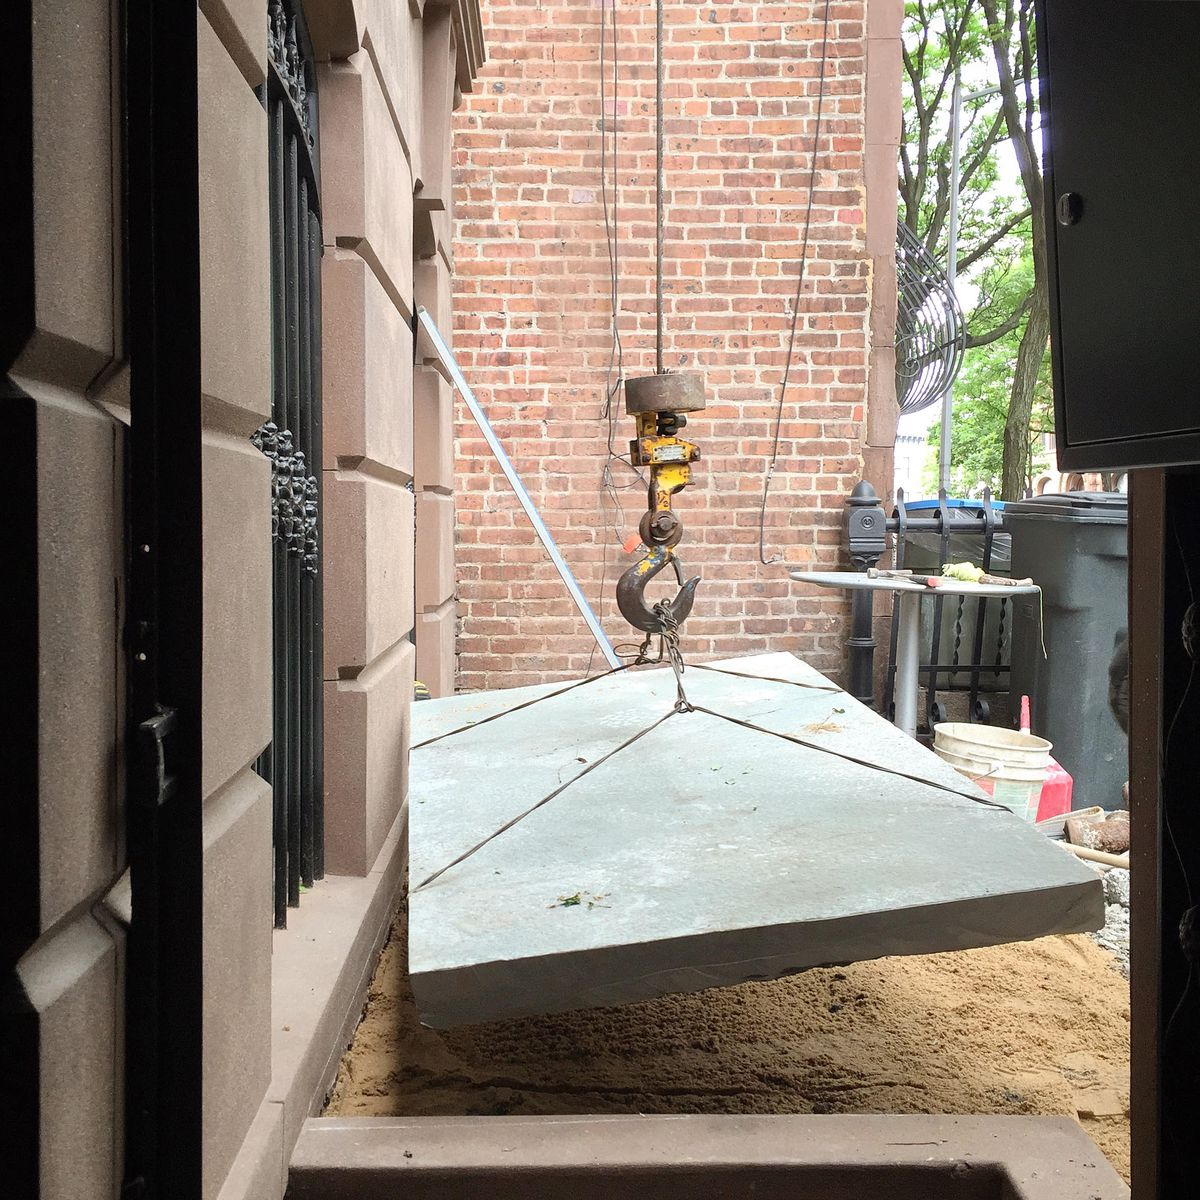 A bluestone paver being lowered into place in the front courtyard enclosure.